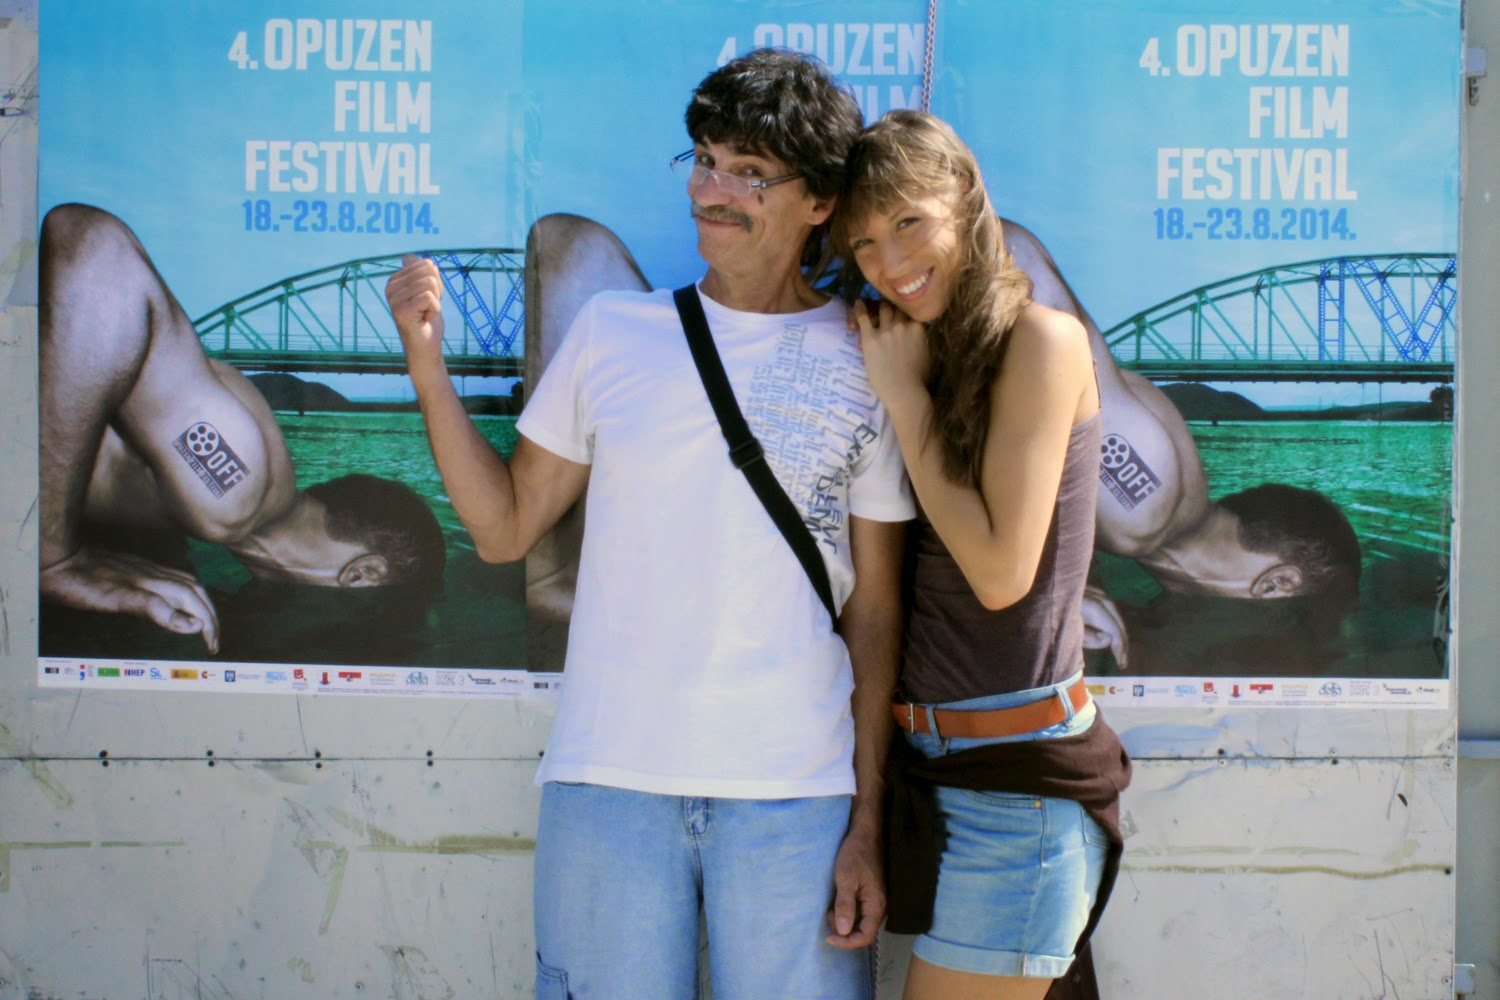 http://www.opuzenfilmfestival.com/eng/index.php/home/news/173-4th-off-closing